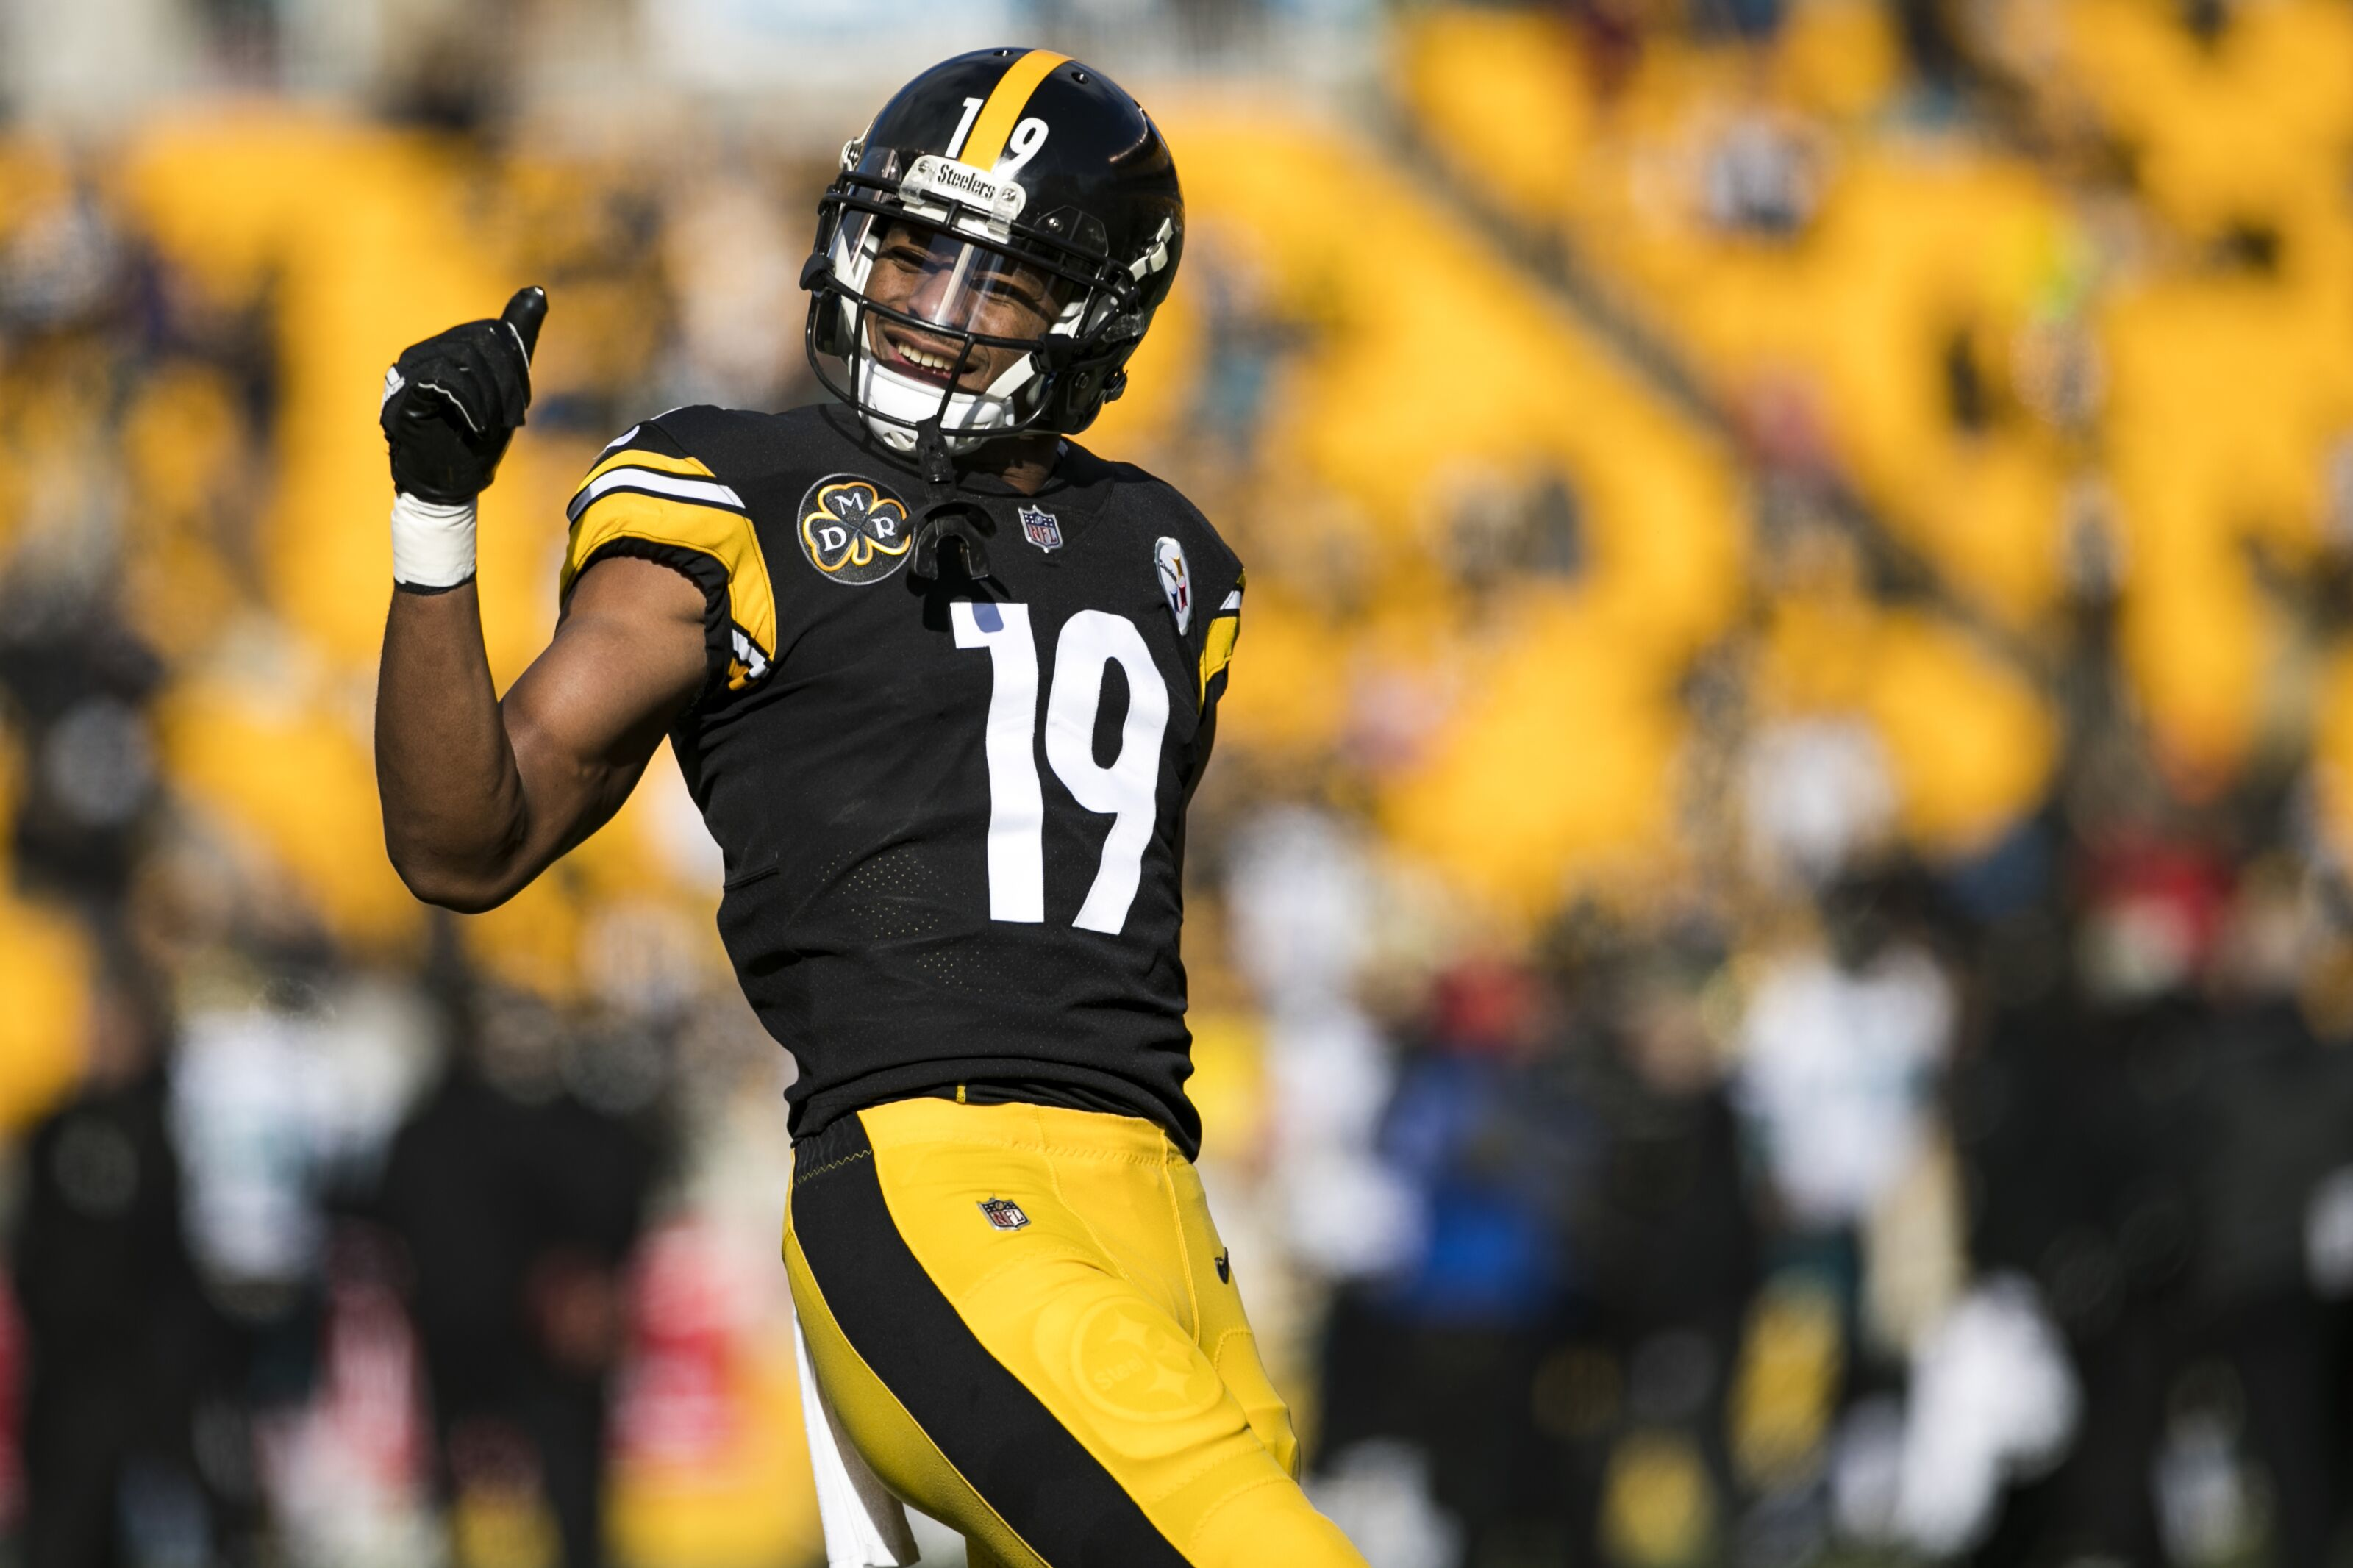 Juju Smith Schuster >> Steelers can't afford injury to wide receiver Juju Smith-Schuster